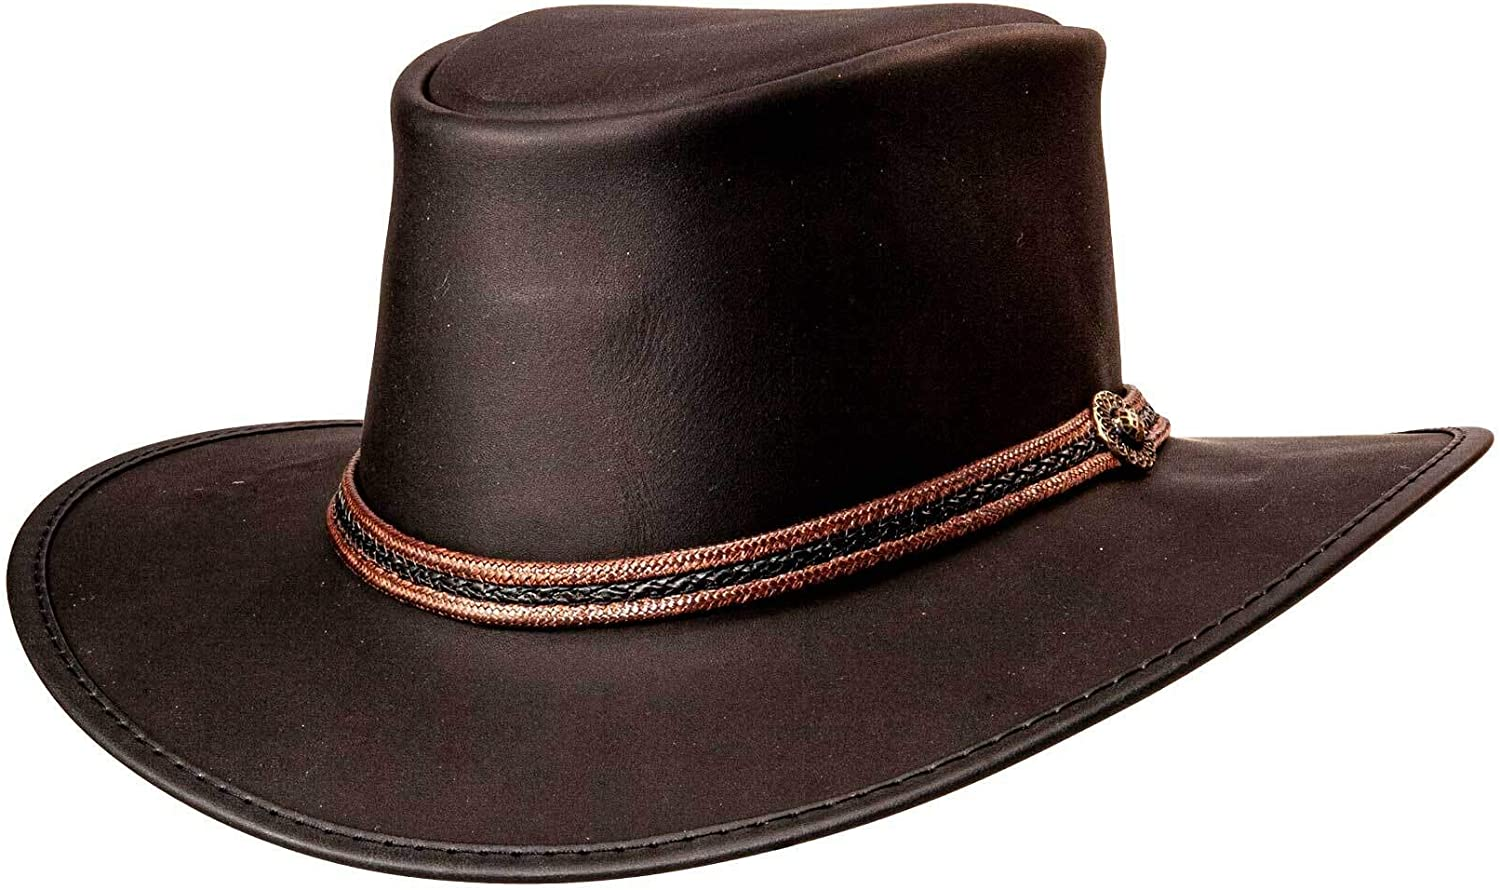 Detroit Mall American 5 popular Hat Makers Midnight Rider Outback Bravo for Leather